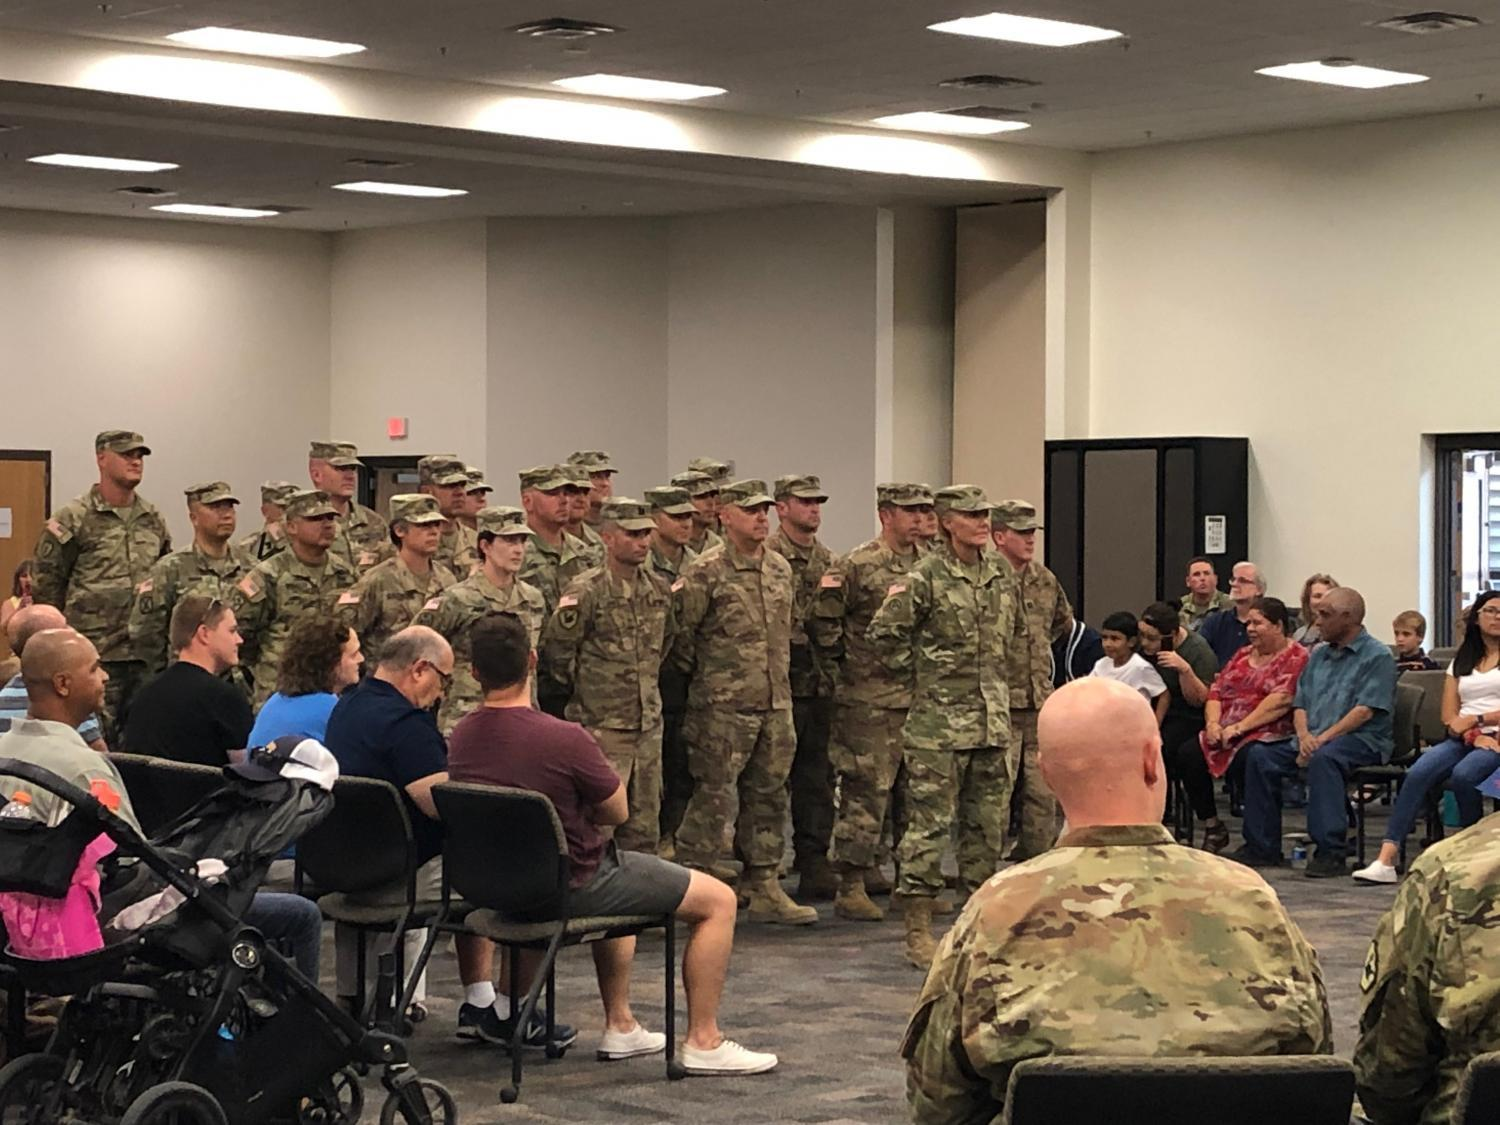 Two dozen soldiers from the Arizona National Guard returned home from a yearlong mobilization.